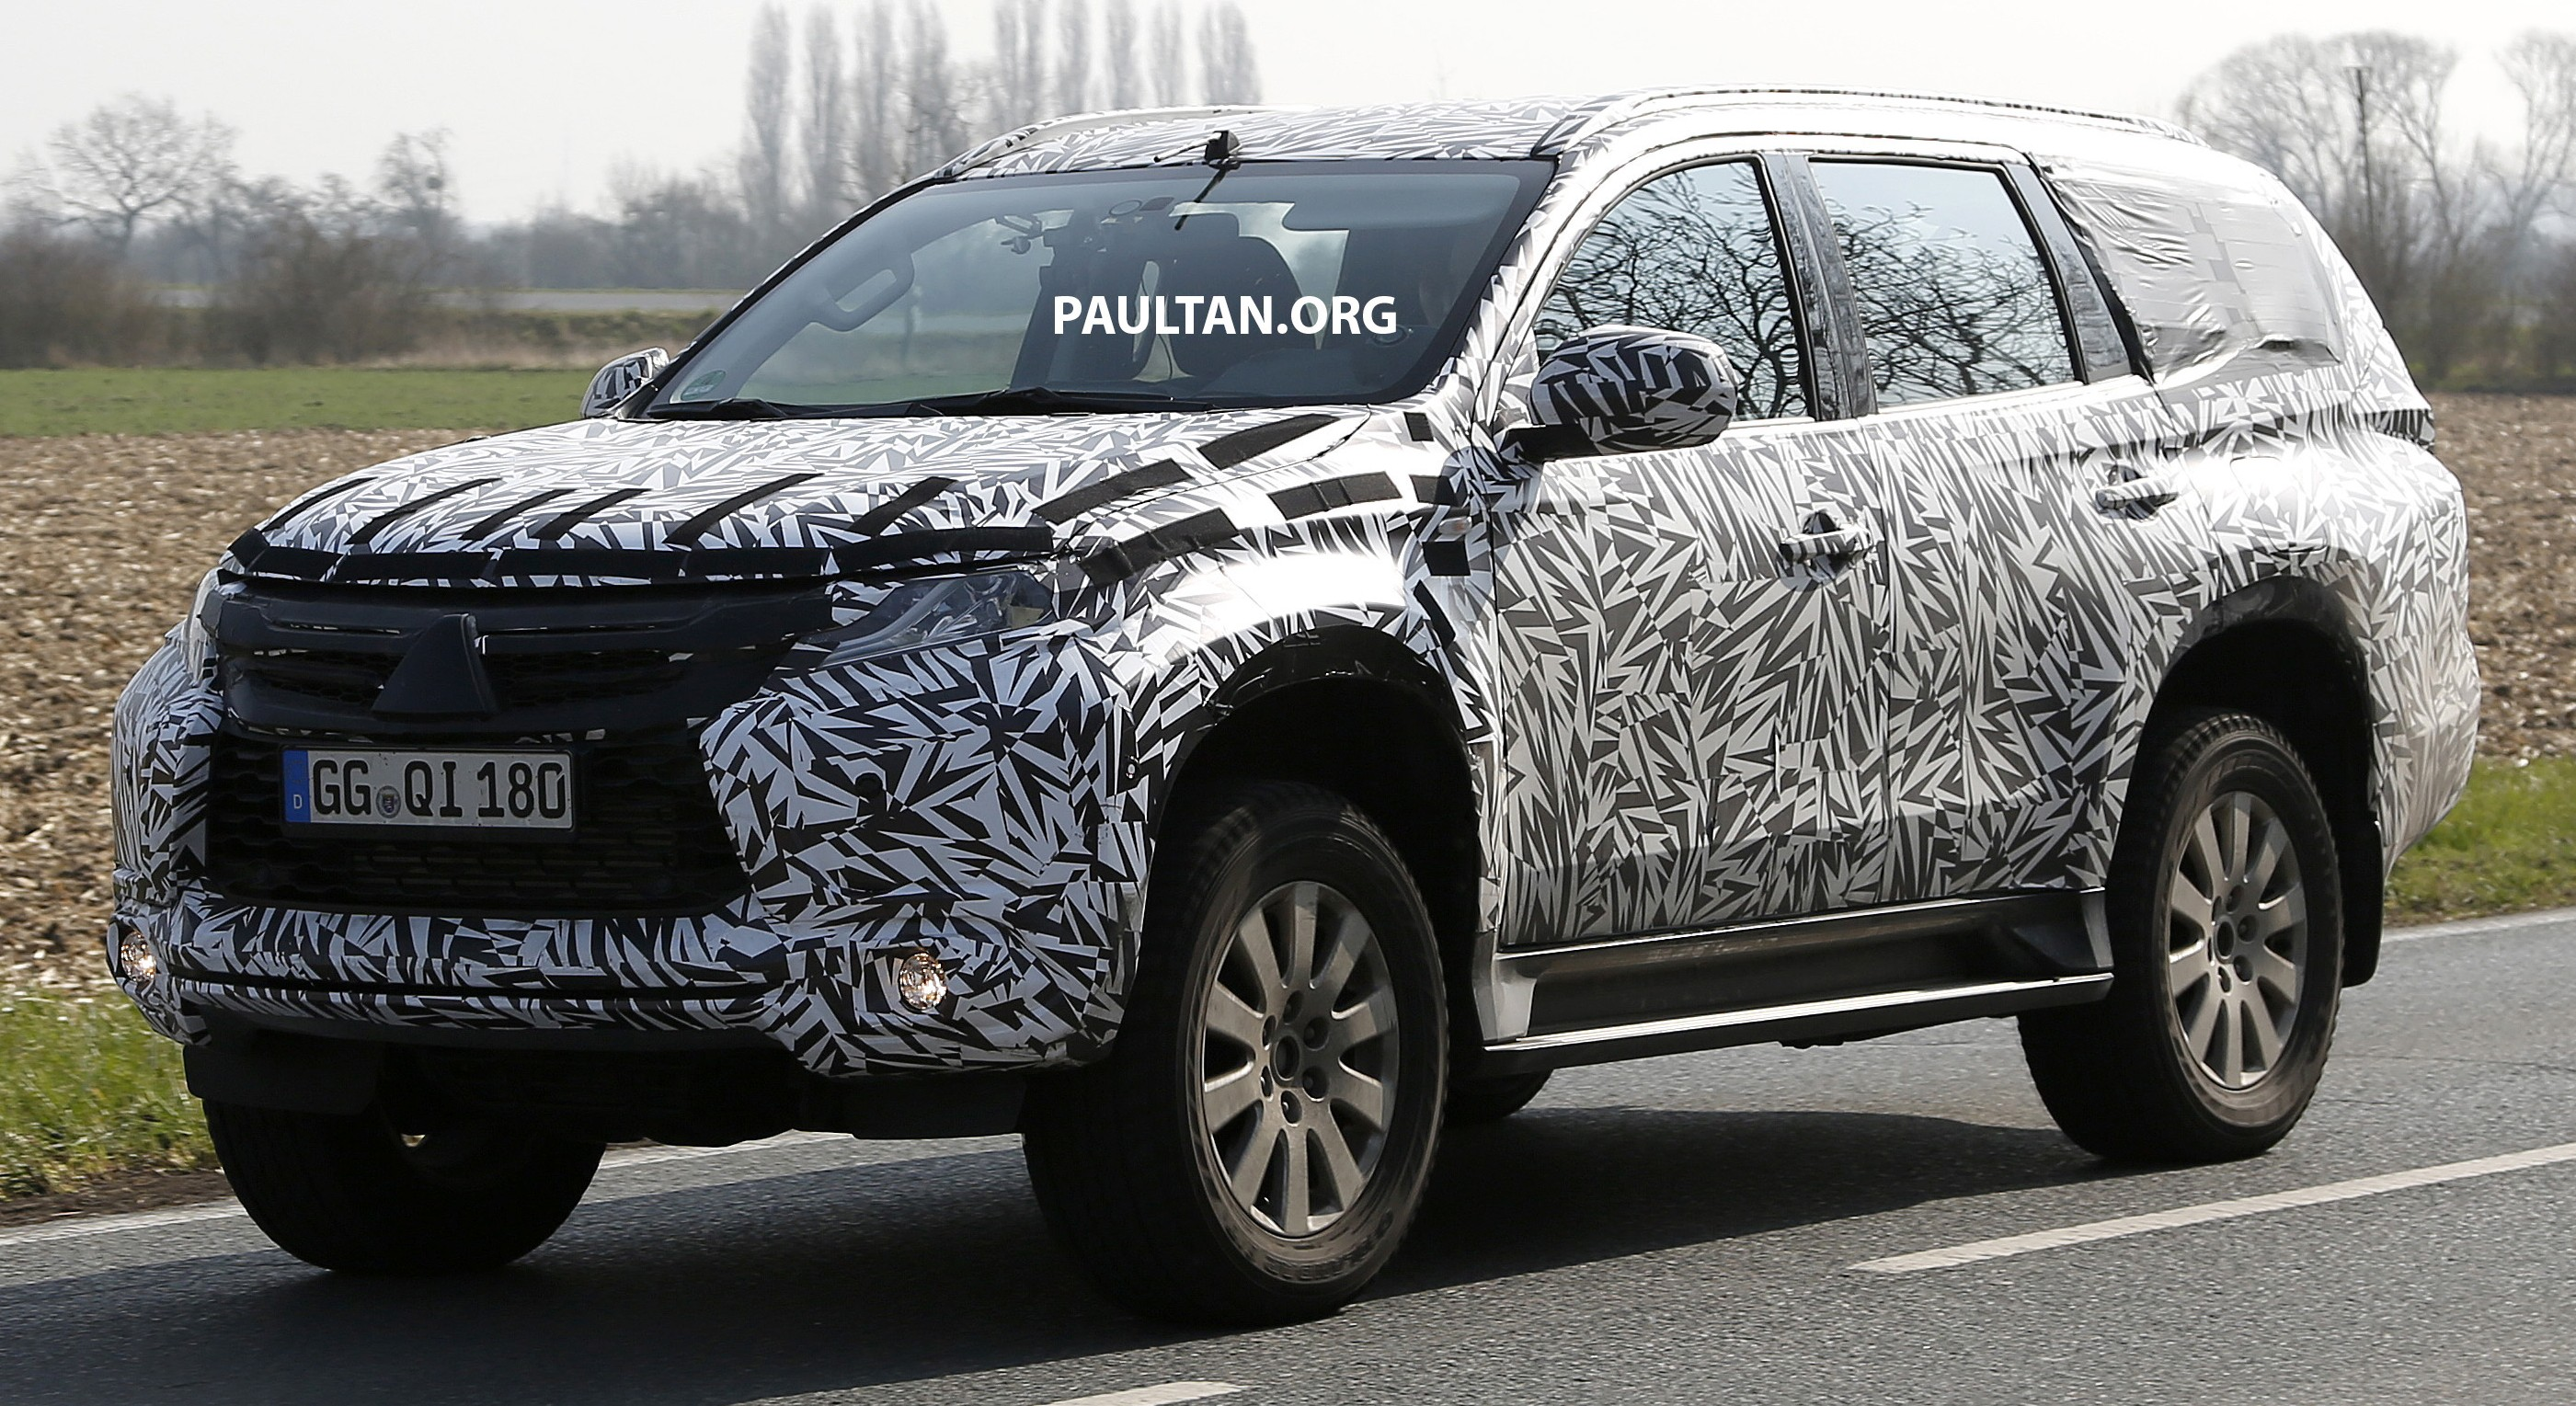 SPIED: 2016 Mitsubishi Pajero Sport first sightings